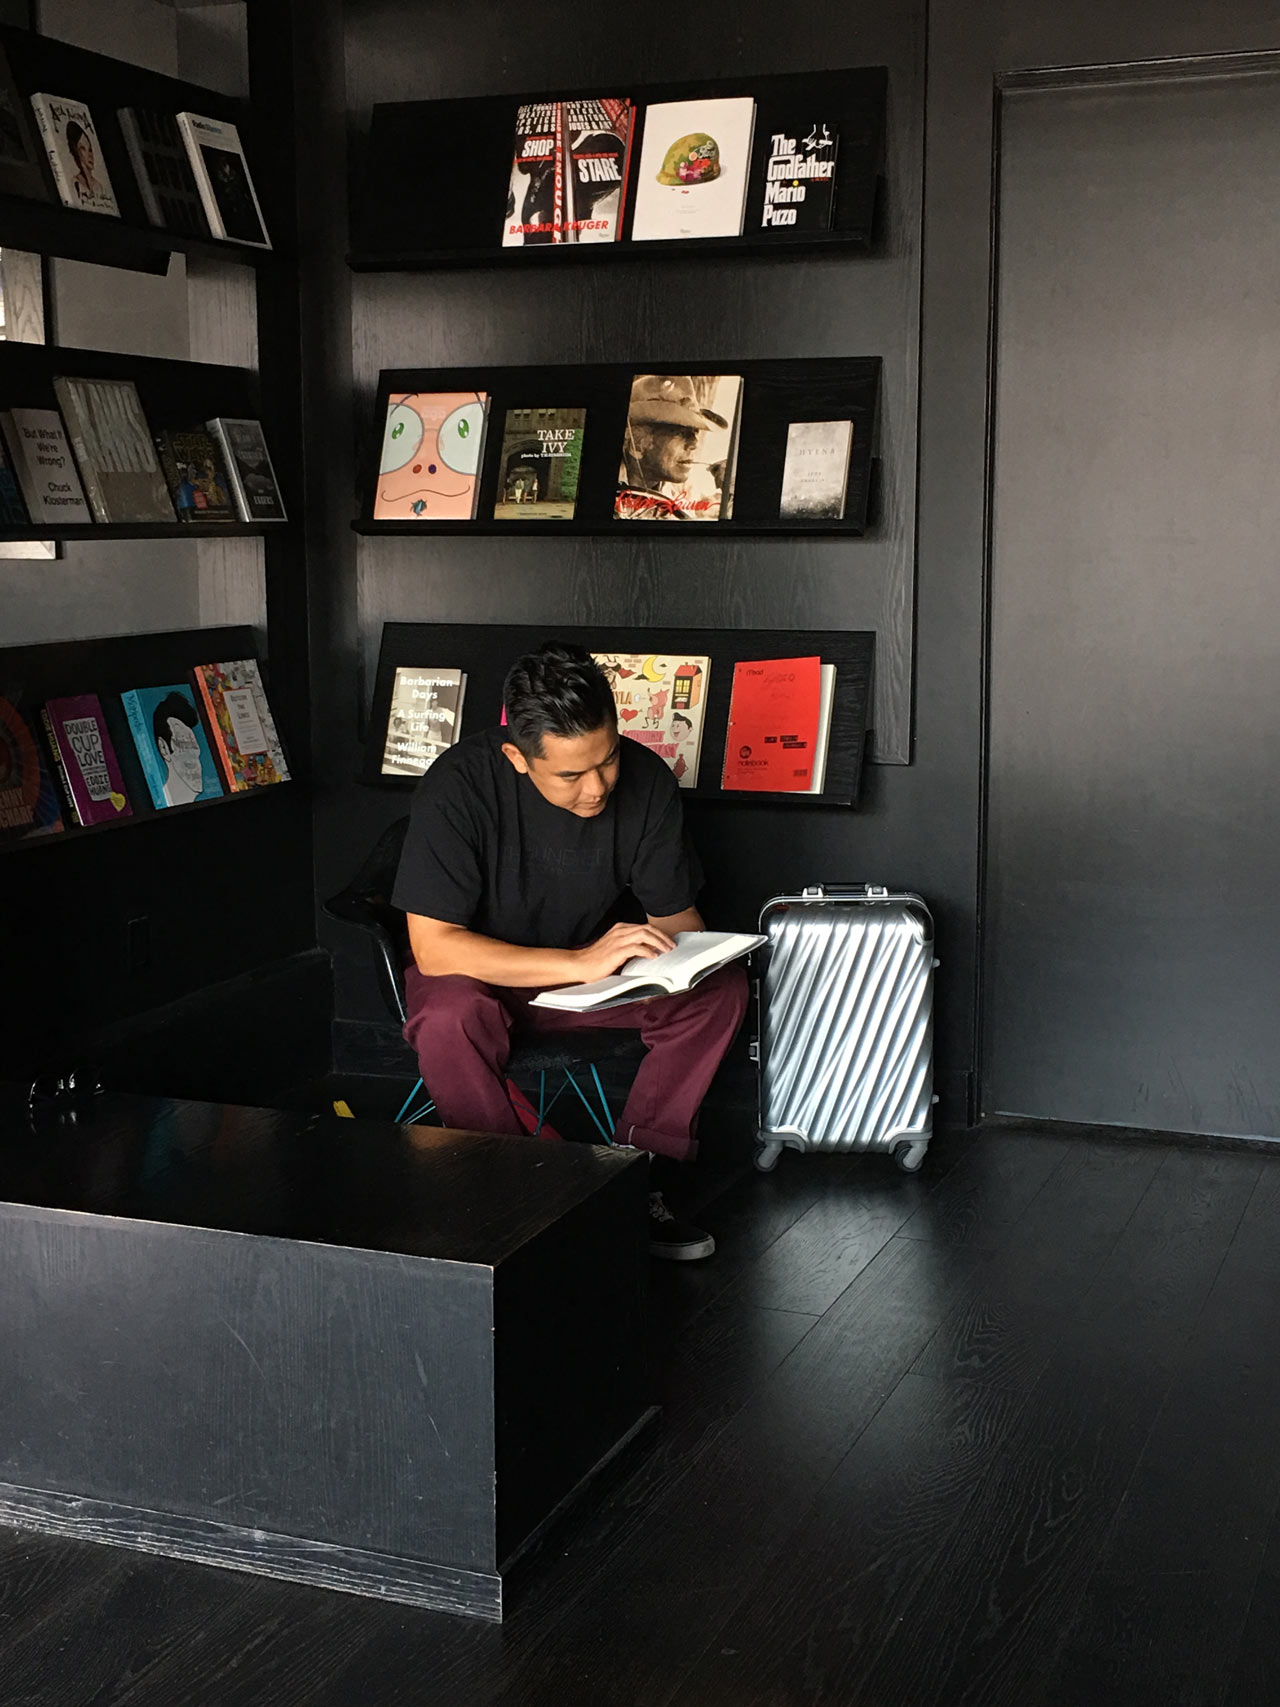 The Hundreds also has a library stocked with great books from LA authors and artists.